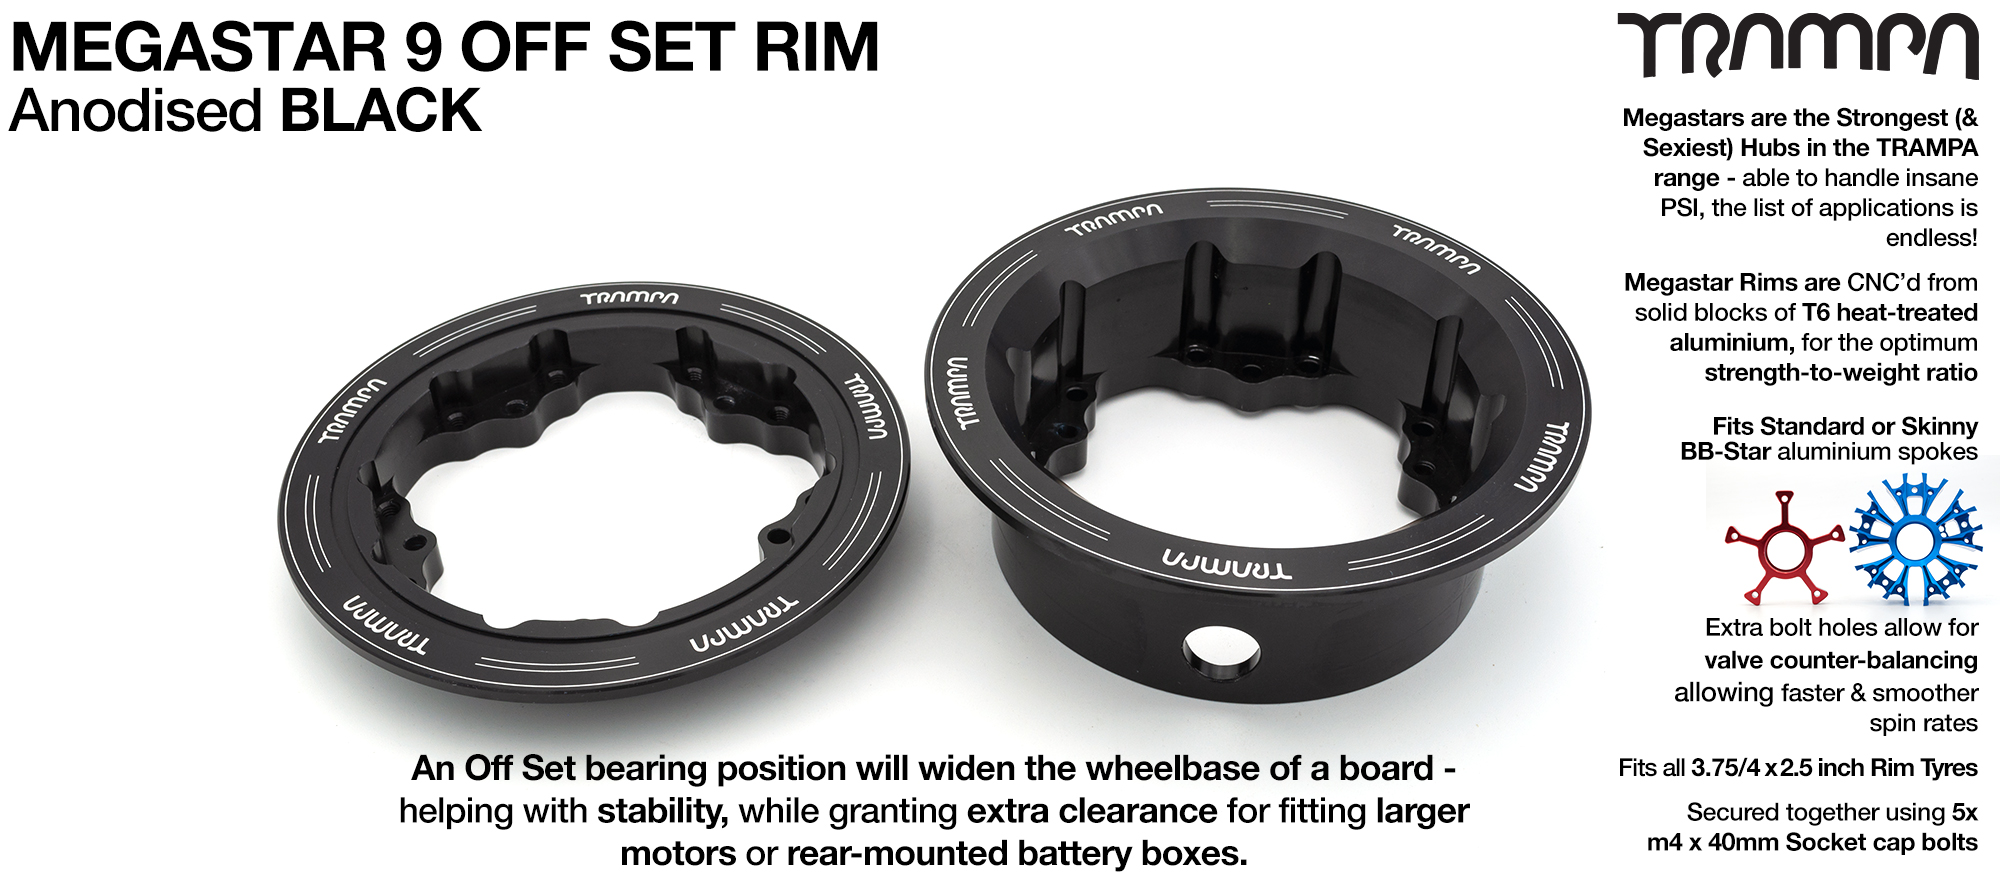 9 Inch DEEP DISH Off-Set MEGASTAR Rims BLACK - Place two on the rear of your Electric Mountainboard for extra Grip & Top Speed!